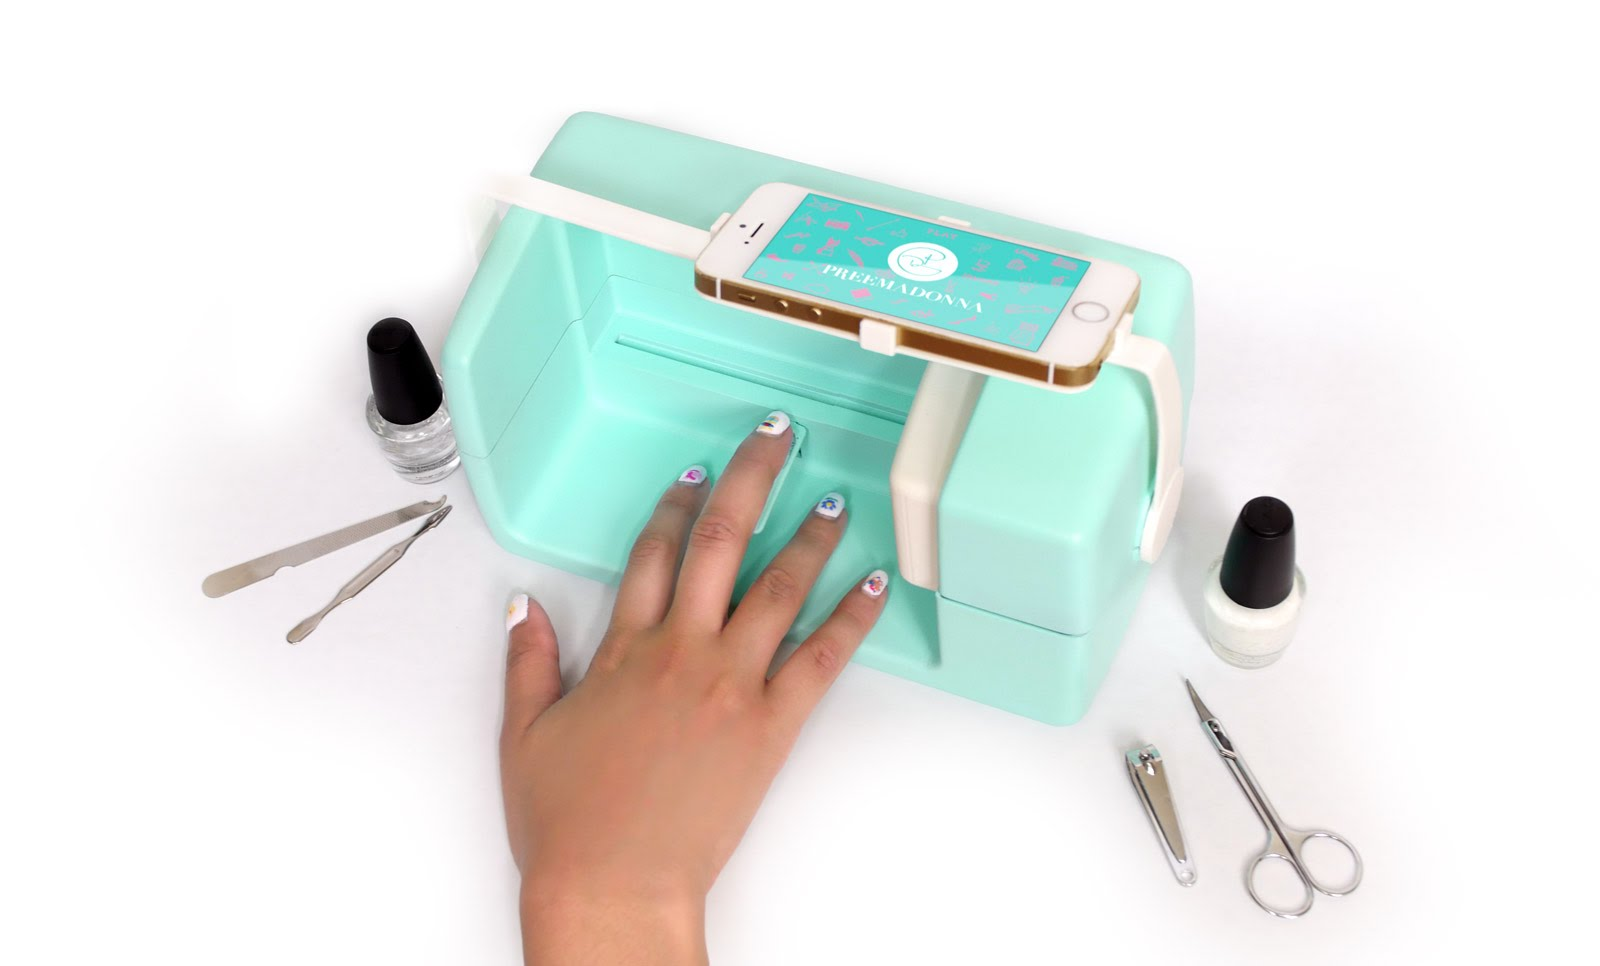 The Nailbot, A Smartphone Enabled Robot That Prints Custom Designs Directly Onto Fingernails